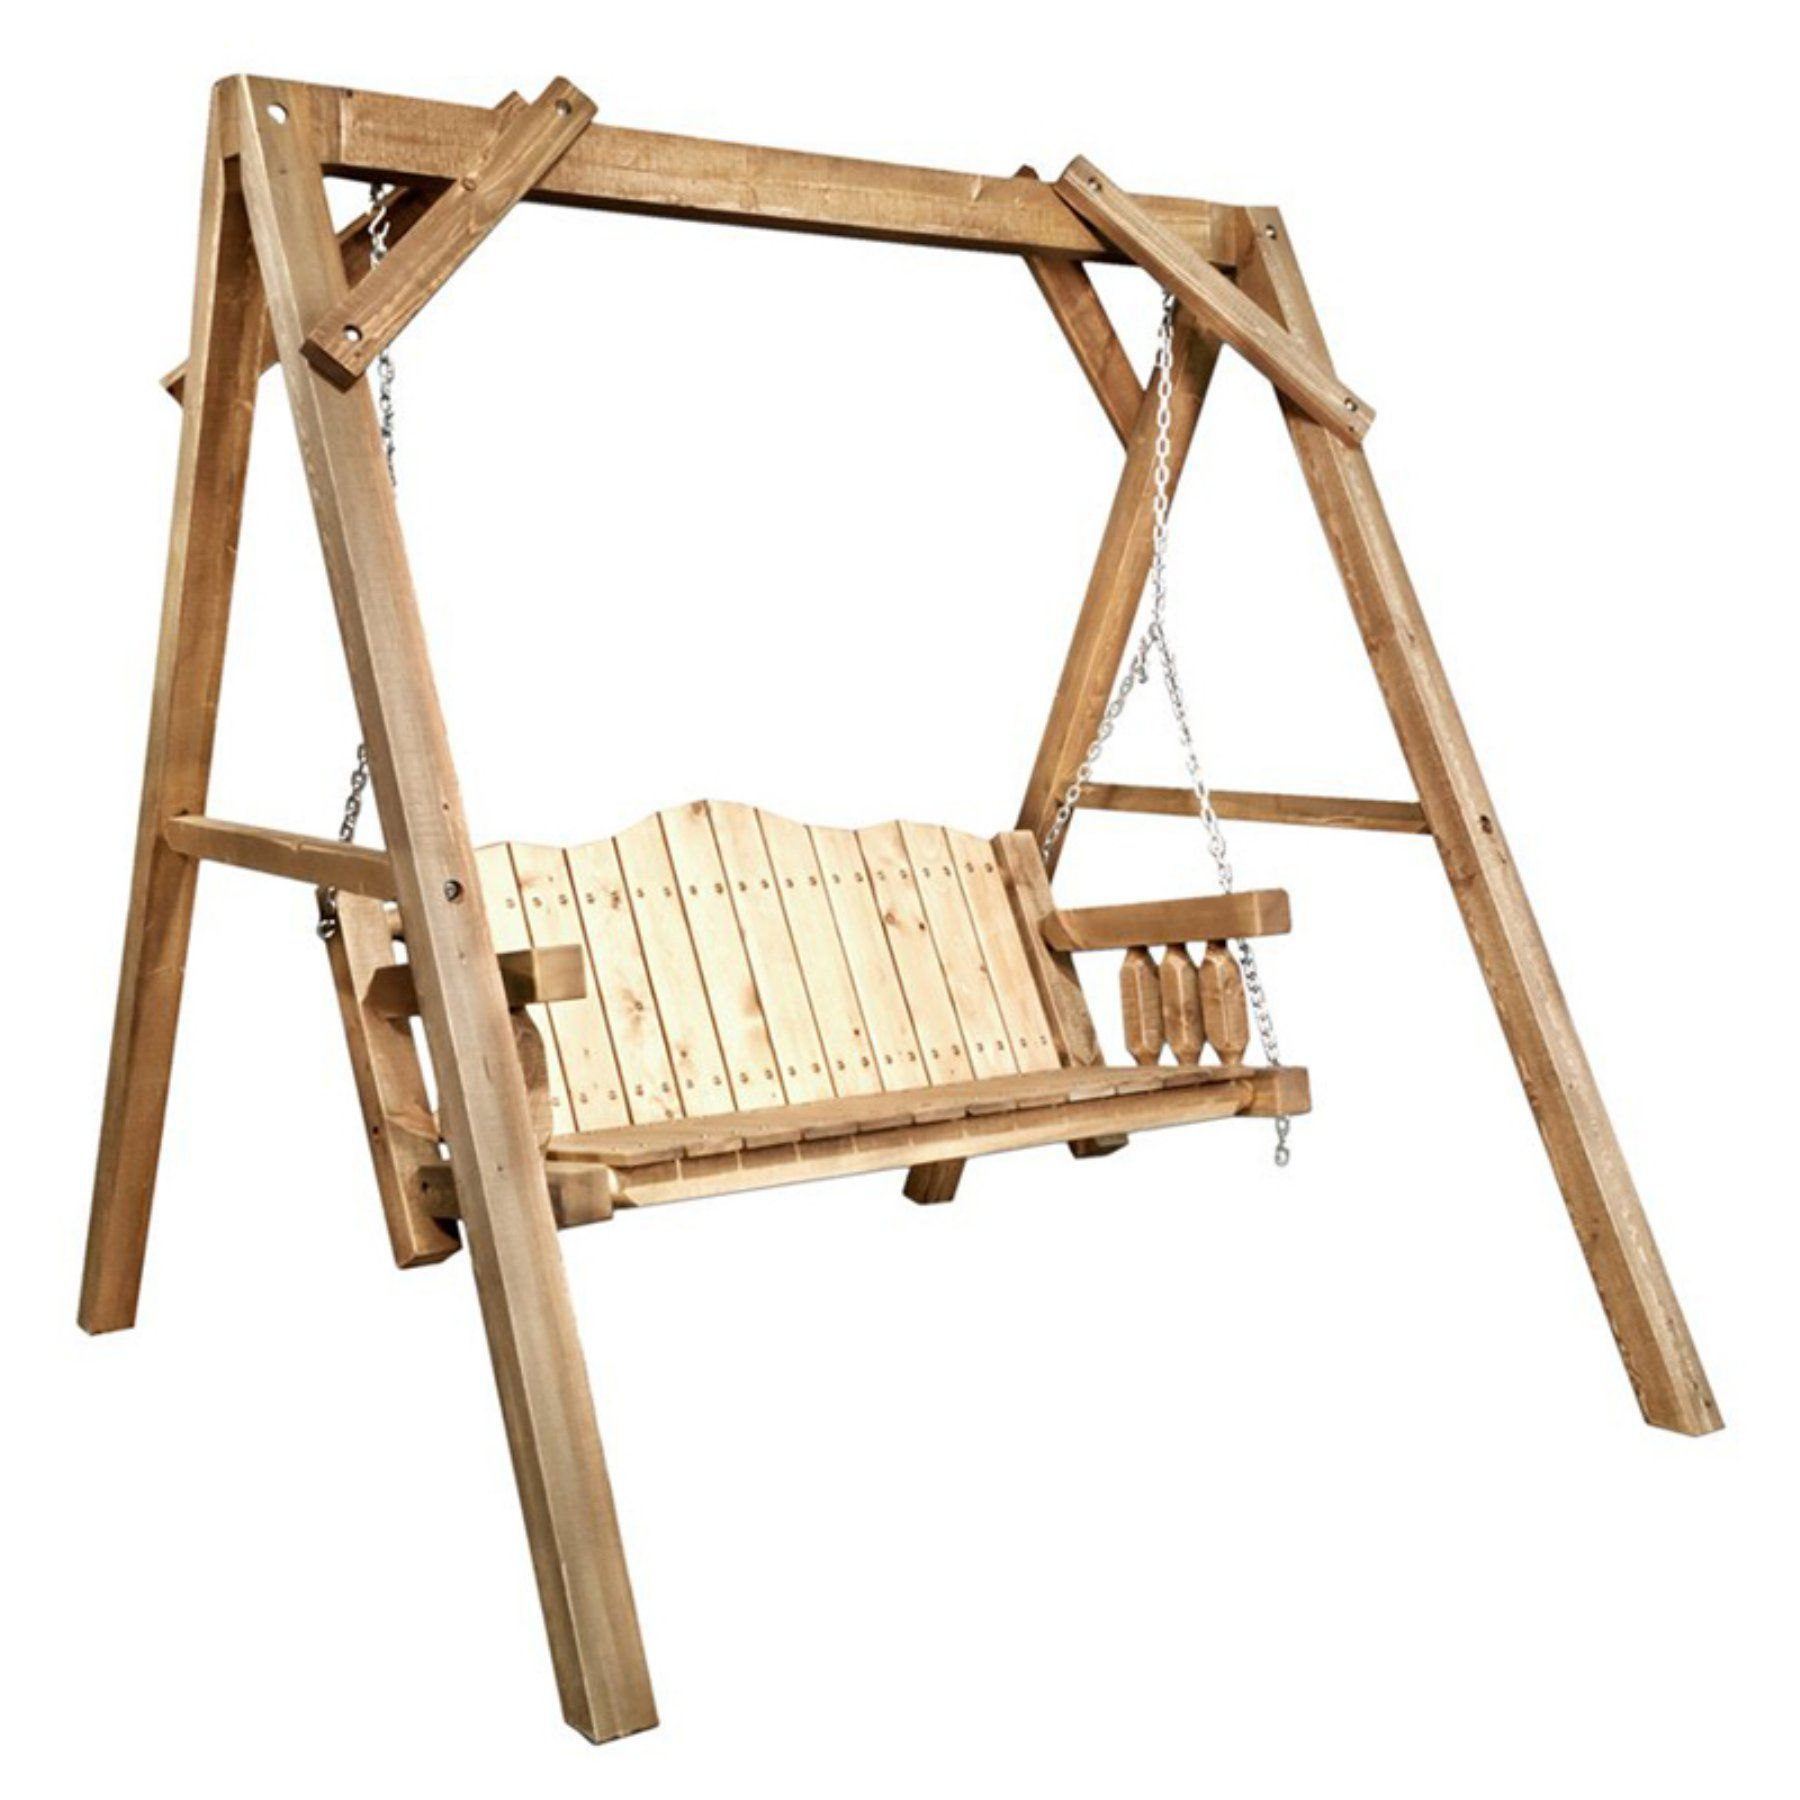 Montana Woodworks Homestead 4 ft. Lawn Swing with AFrame